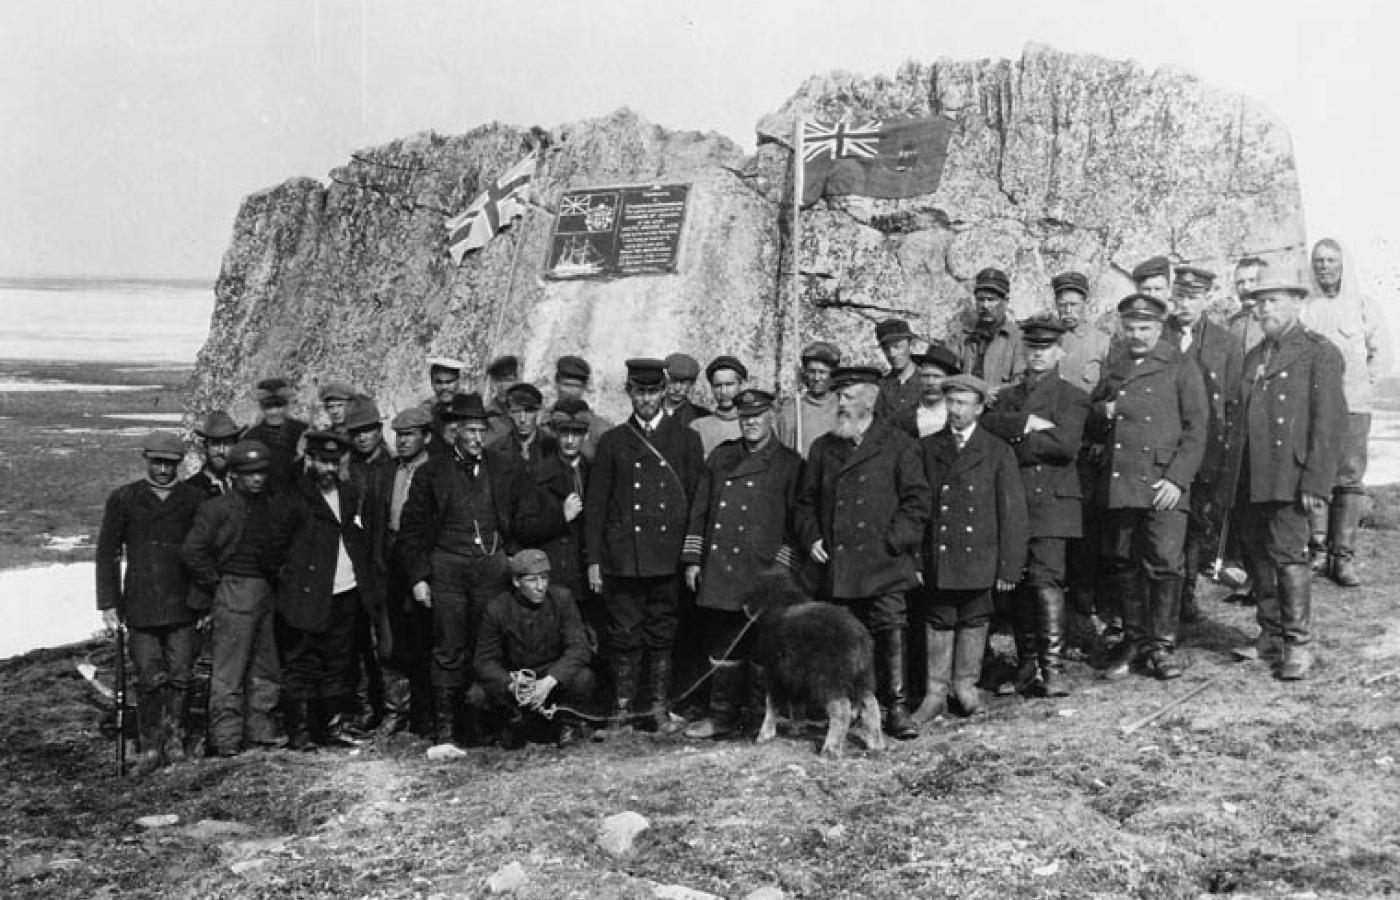 Historical image of a group of men in front of a sandstone monument used to guide explorers